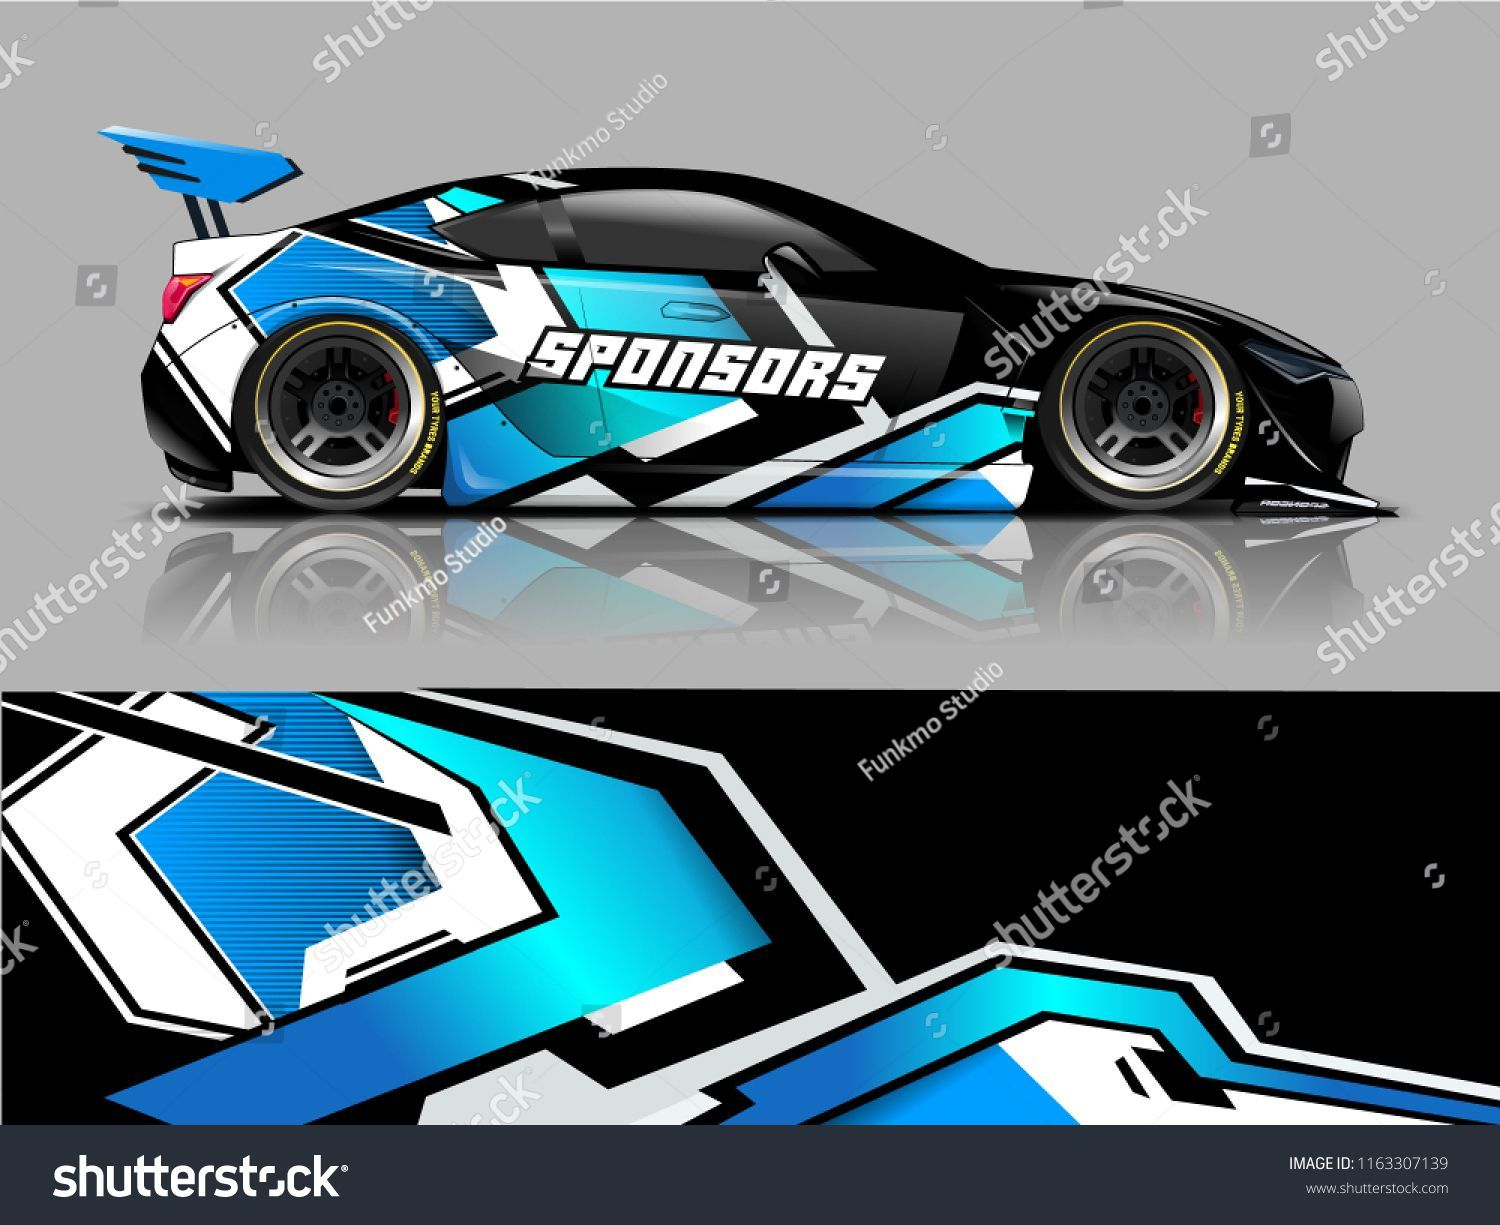 Idee Emballage Of Car To Decapeur Tell Us About This Pin Car Sticker Design Car Wrap Design Racing Car Design [ 1225 x 1500 Pixel ]